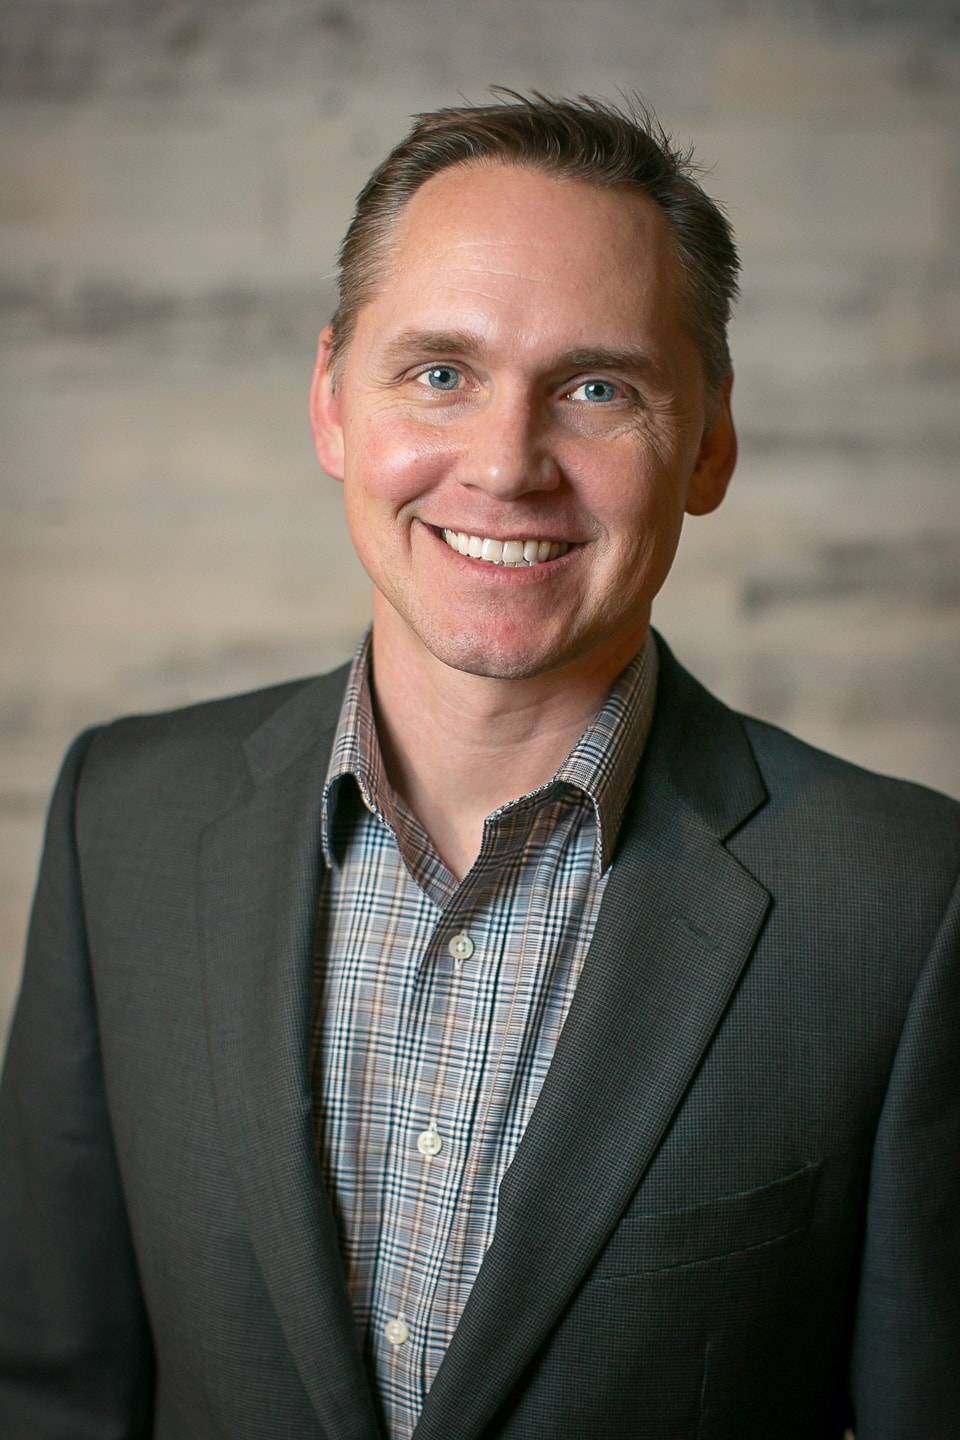 Michael Franklin of Tandem Financial